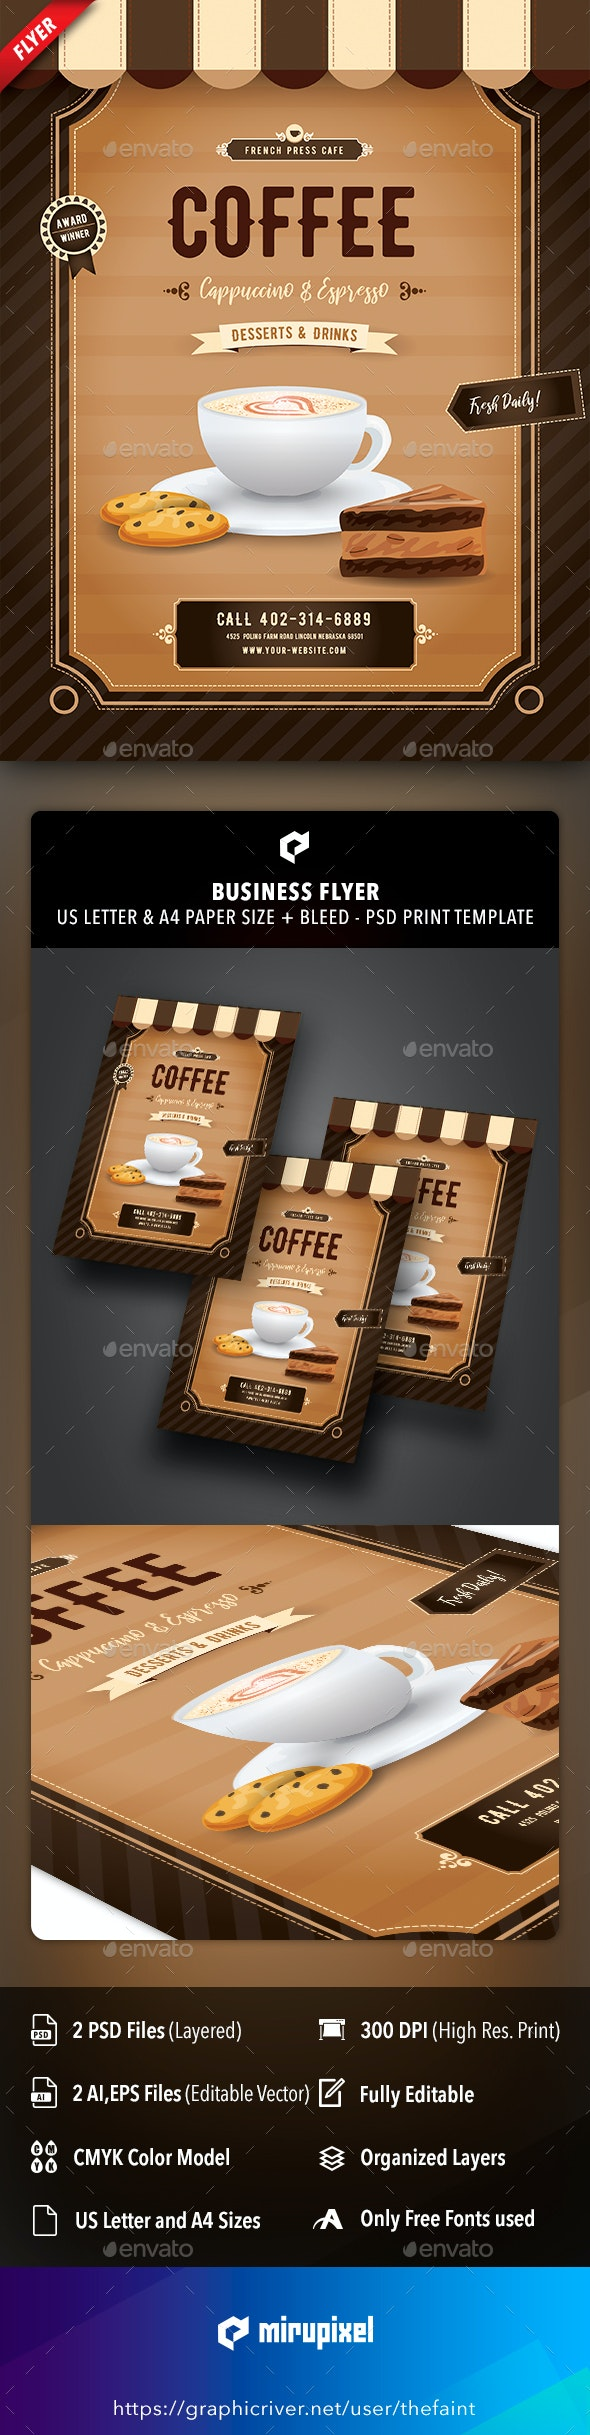 Coffee Station Business Flyer - Commerce Flyers